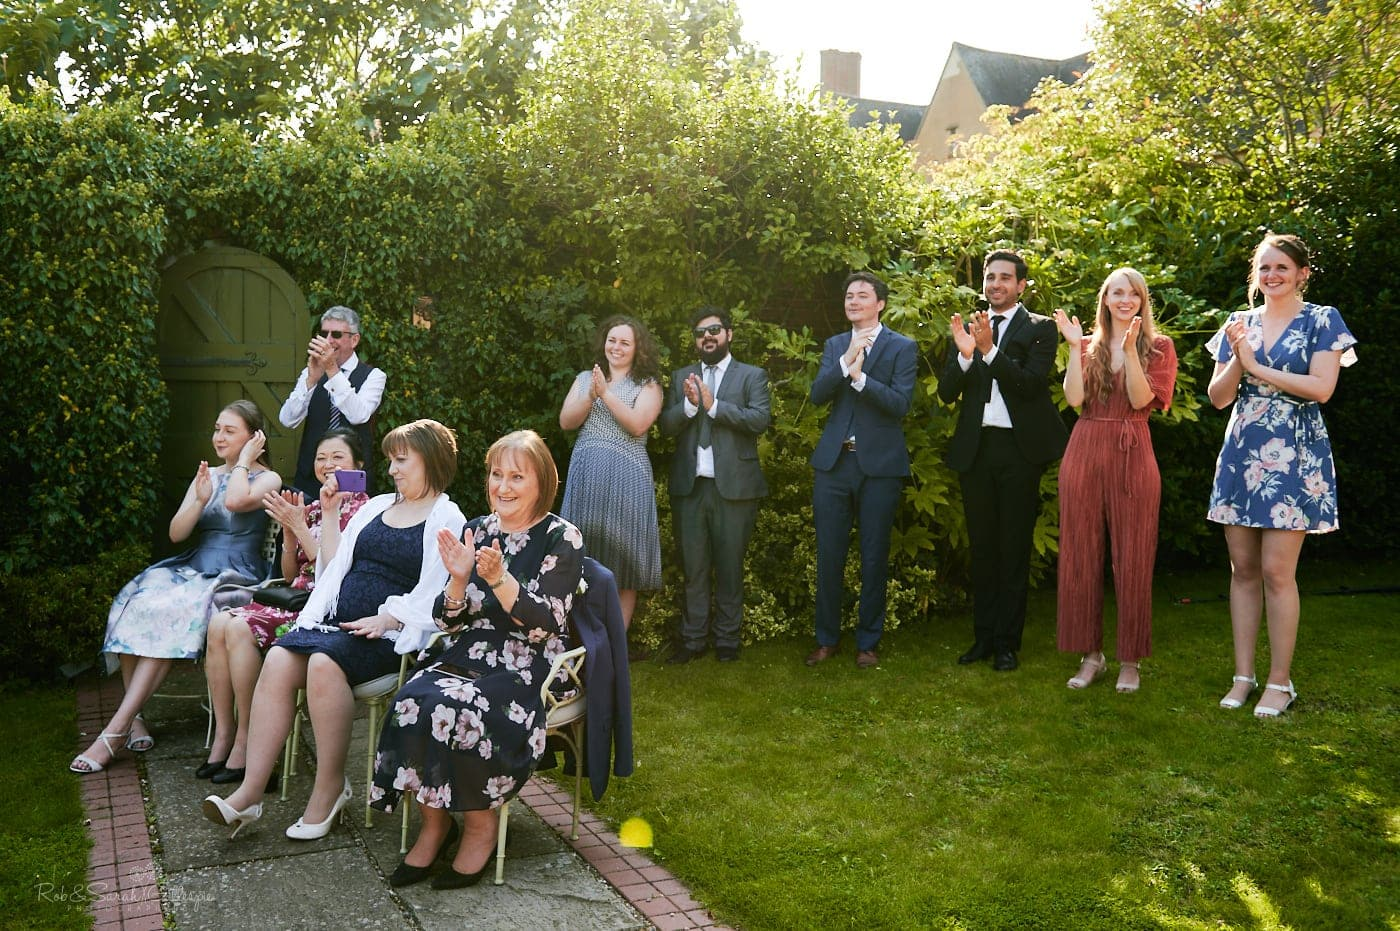 Wedding guests clap as bride and groom perform first dance outside